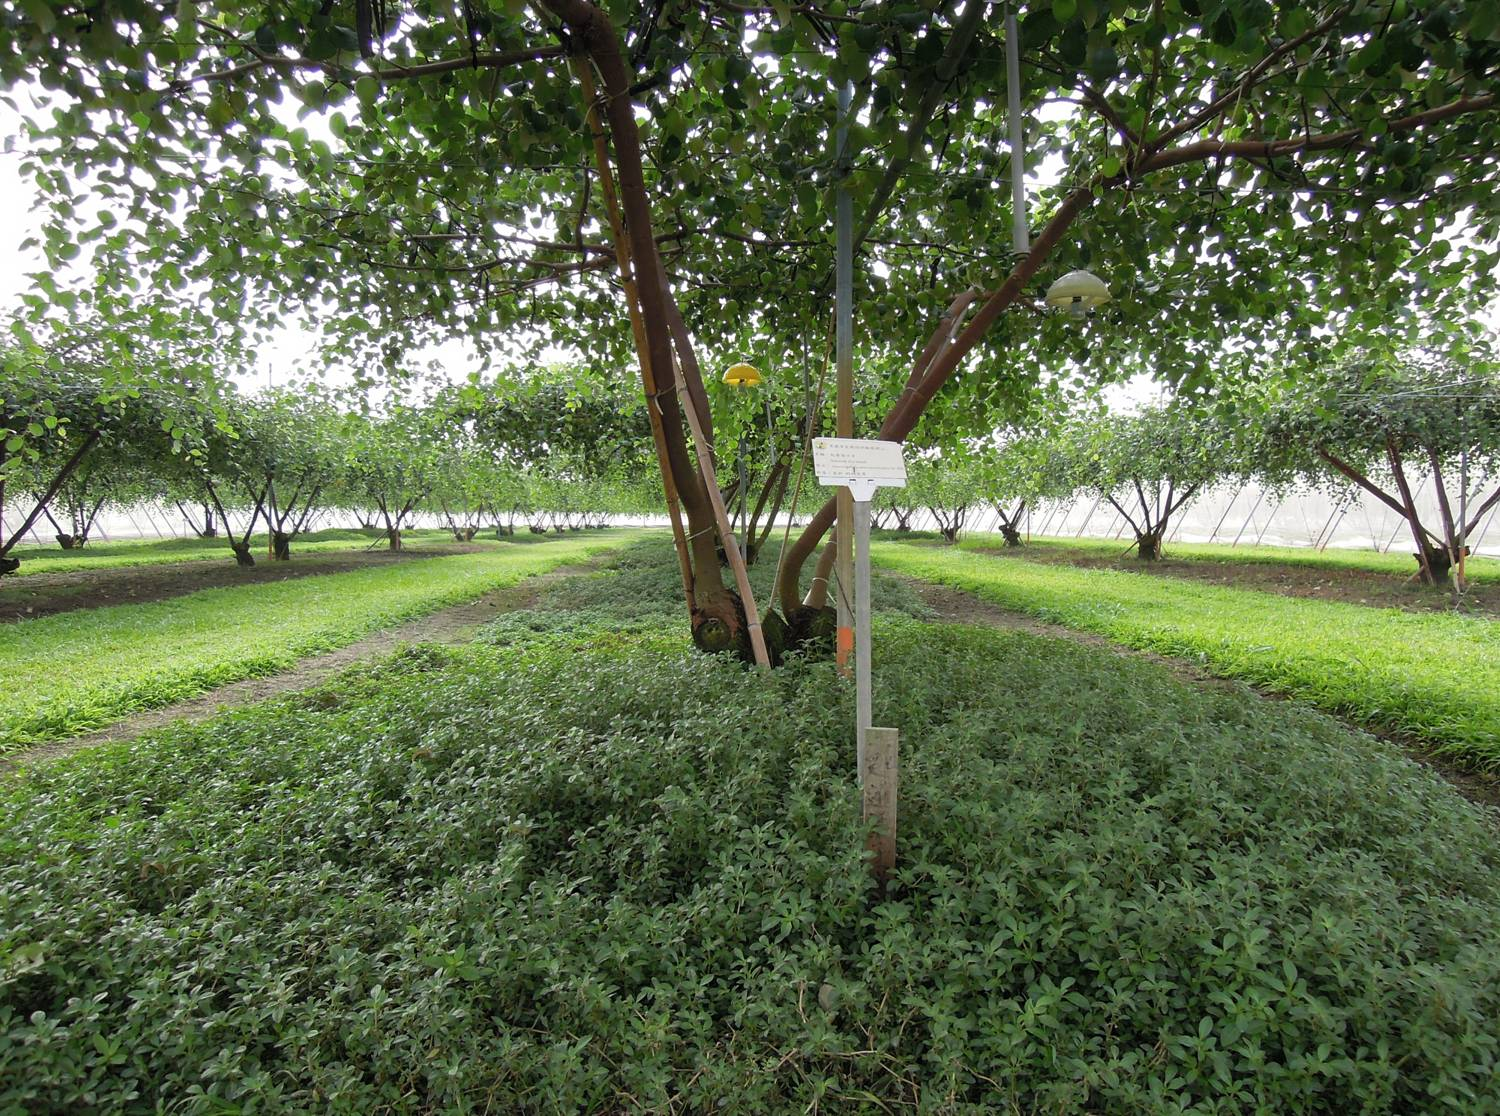 Single grass cultivation in jujube orchards